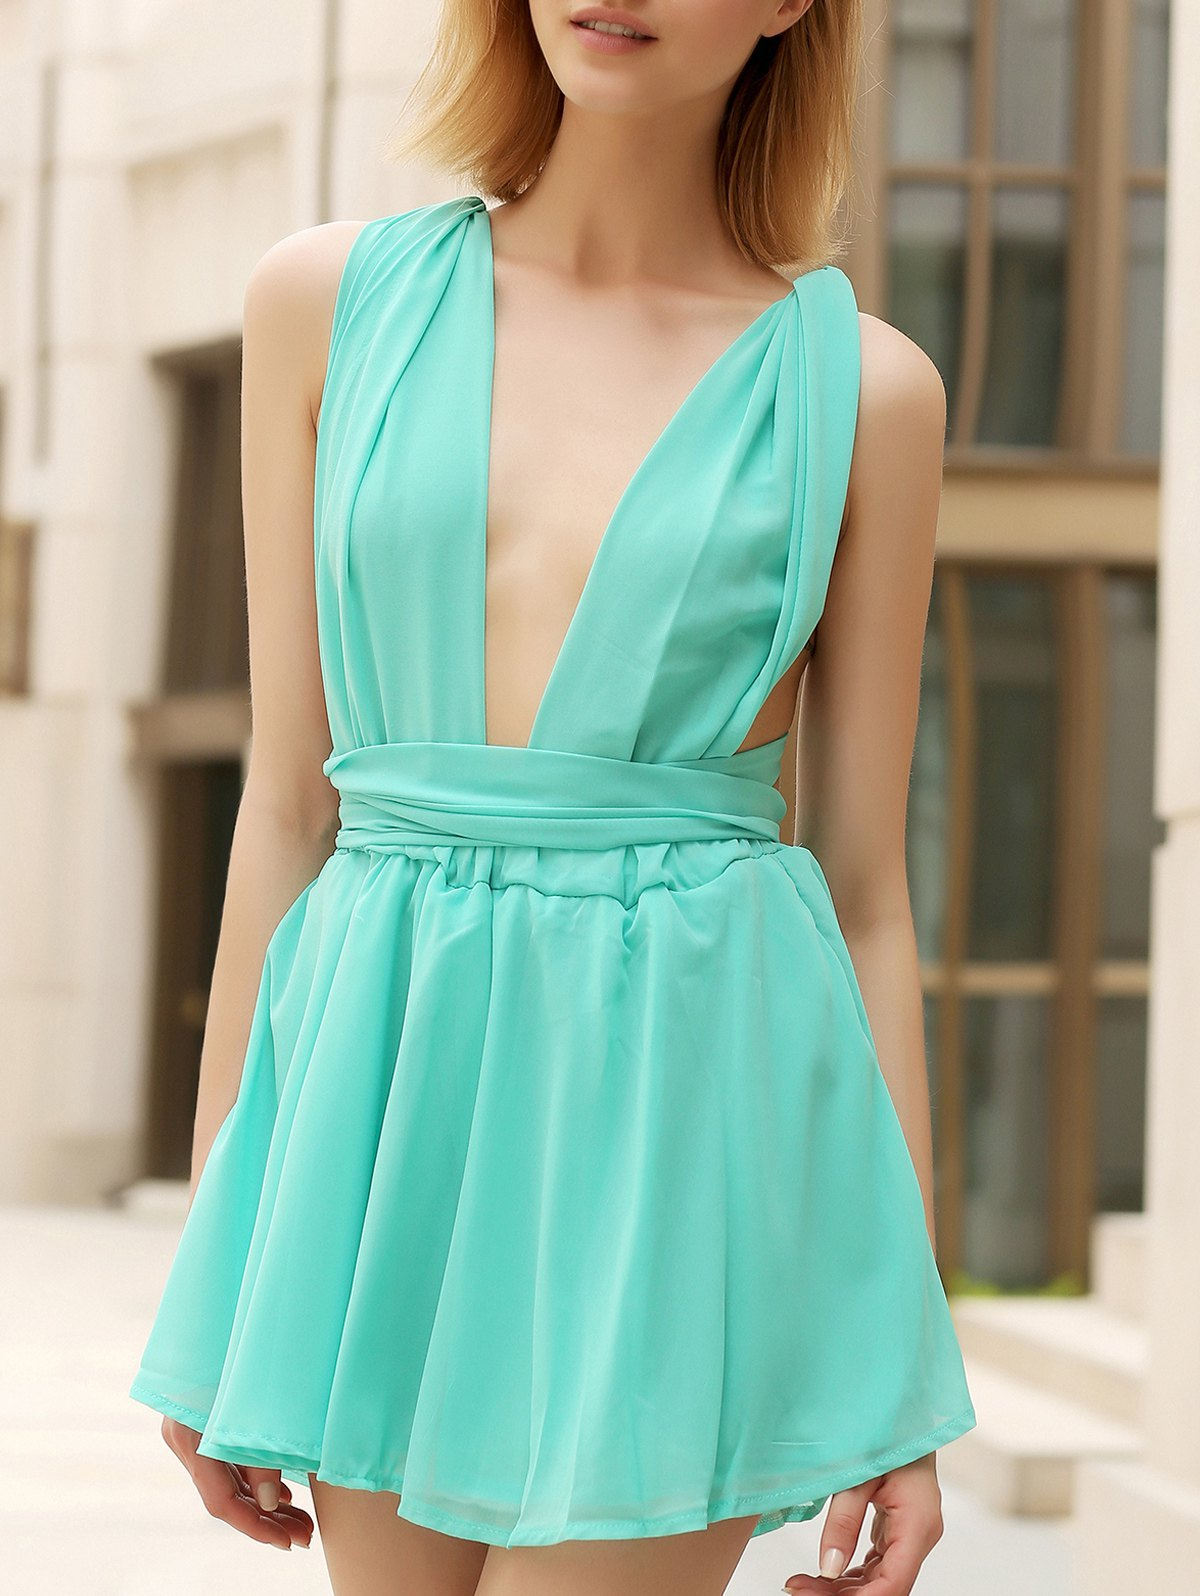 Chic Women's Plunging Neck Criss Cross Solid Color Bowknot Sleeveless Romper